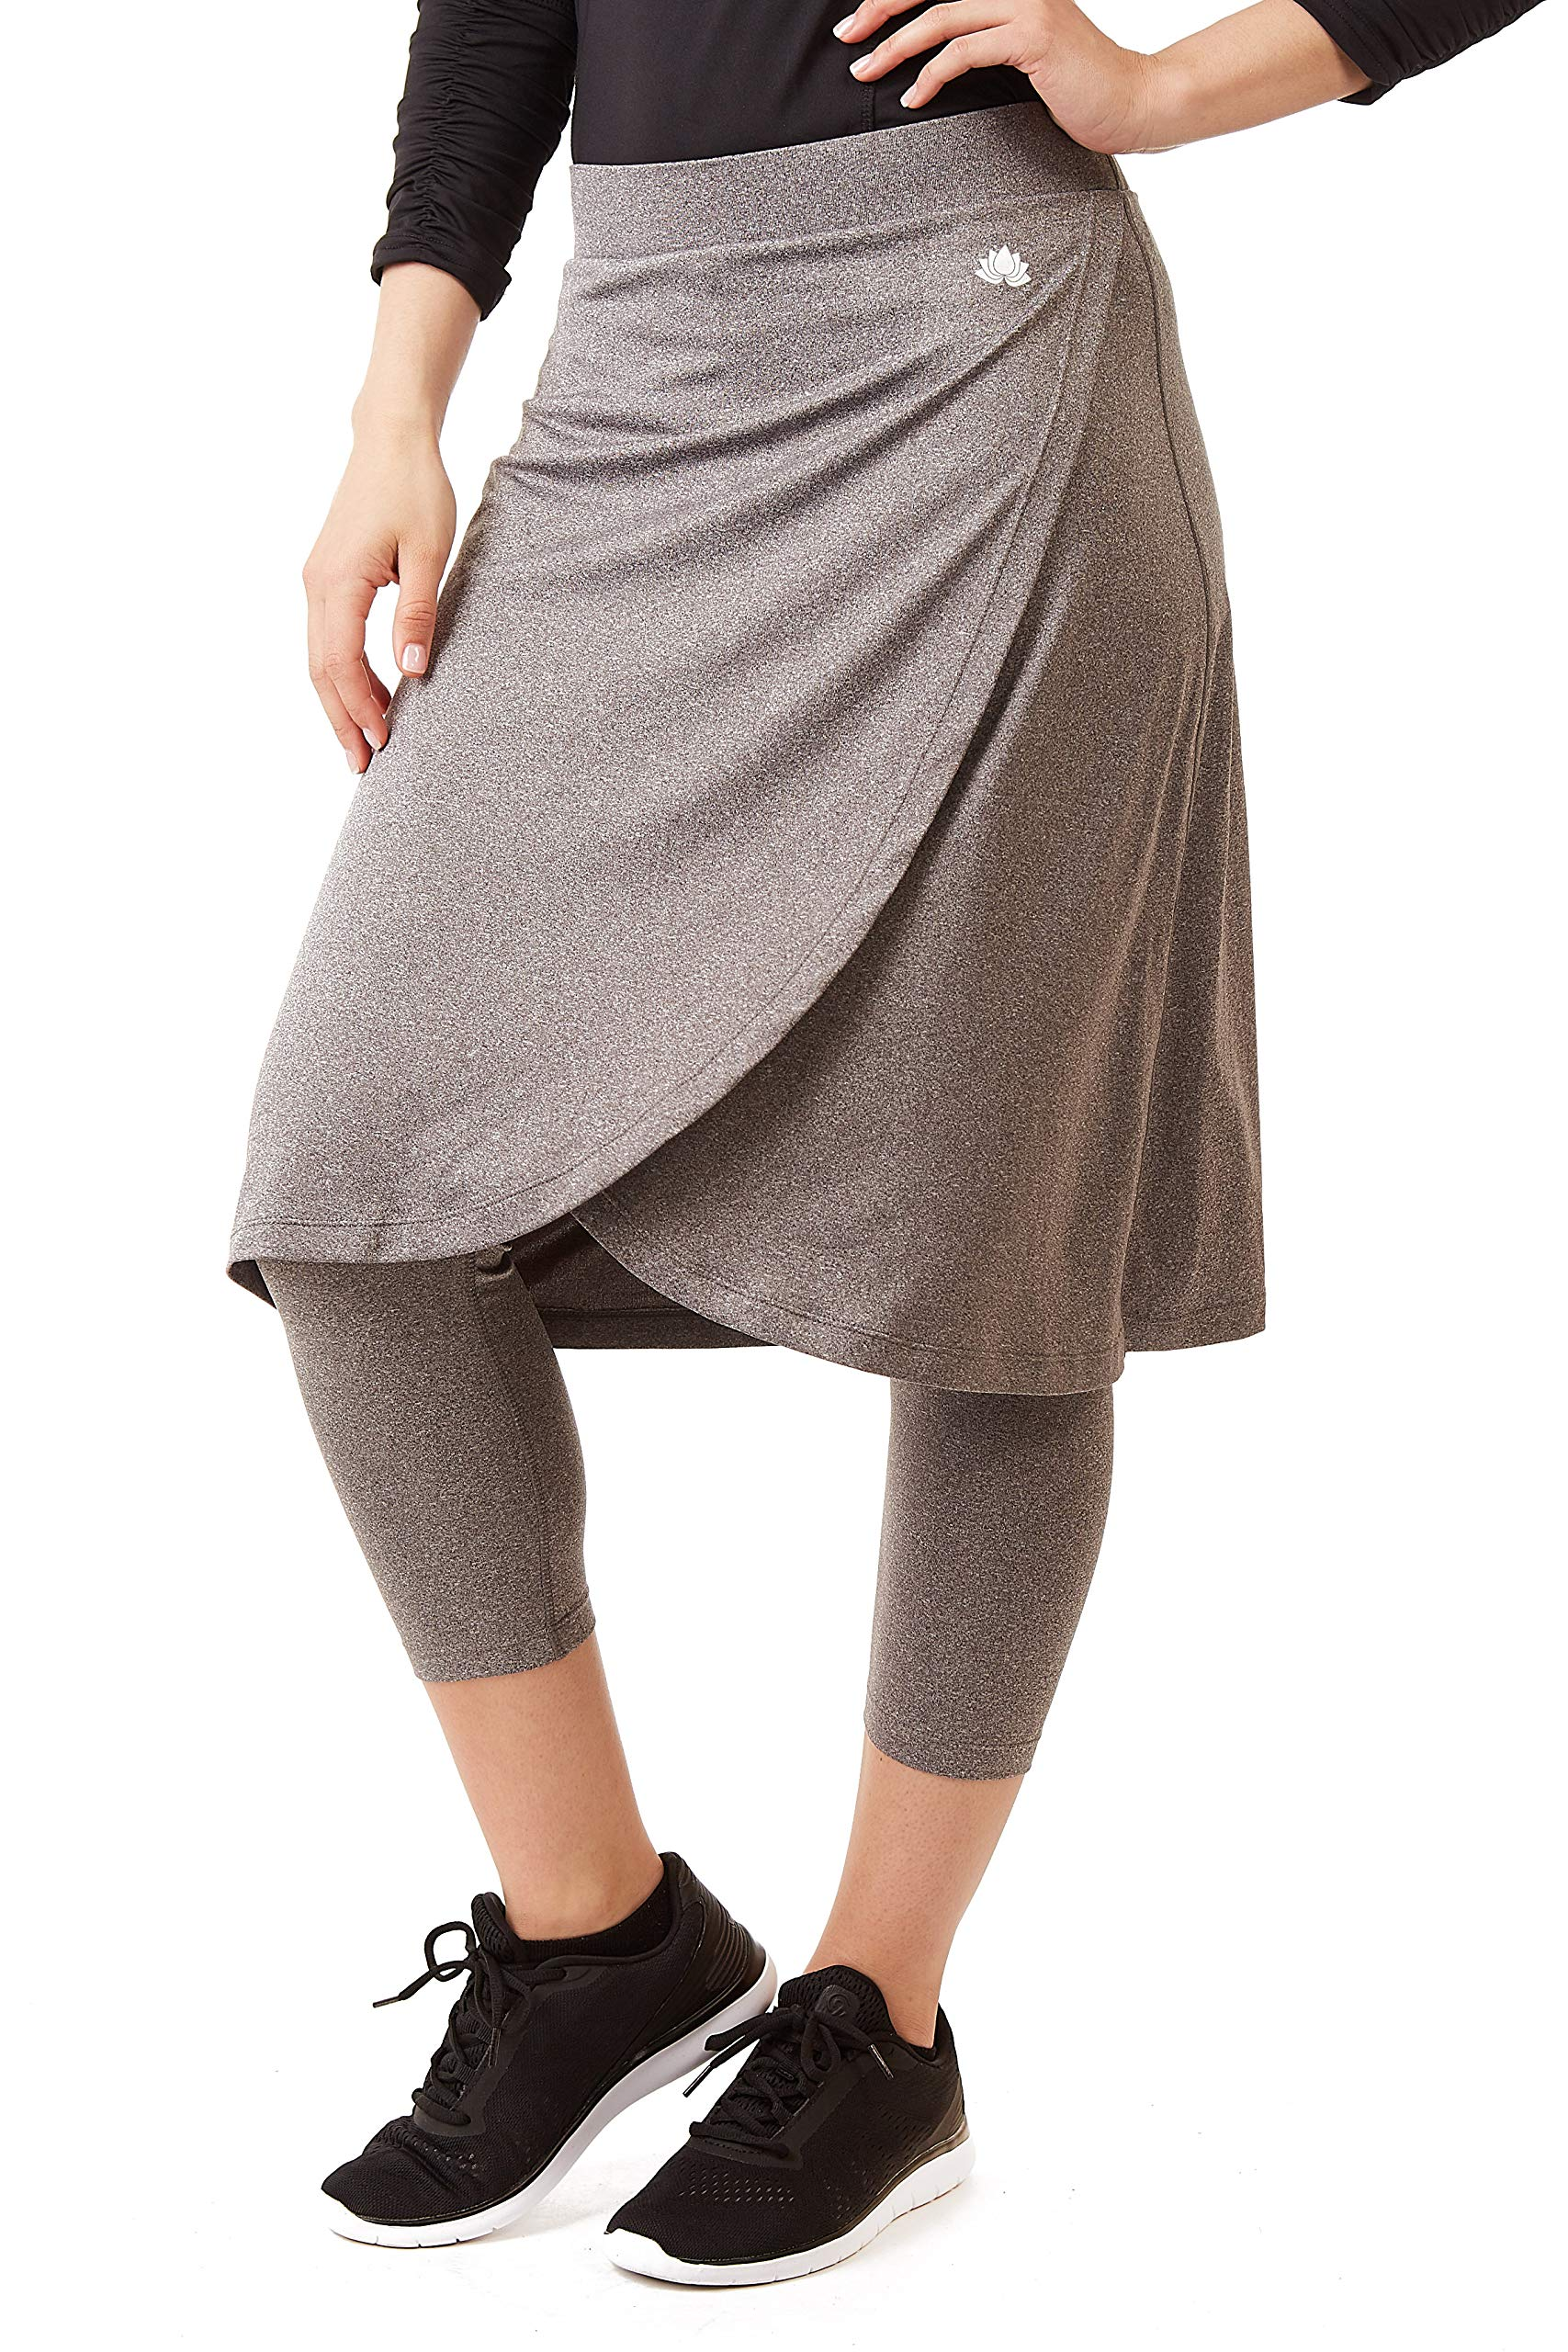 Snoga Modest Workout Faux Wrap 3/4 Length Leggings Attached - Heather Grey, Small by Snoga Athletics